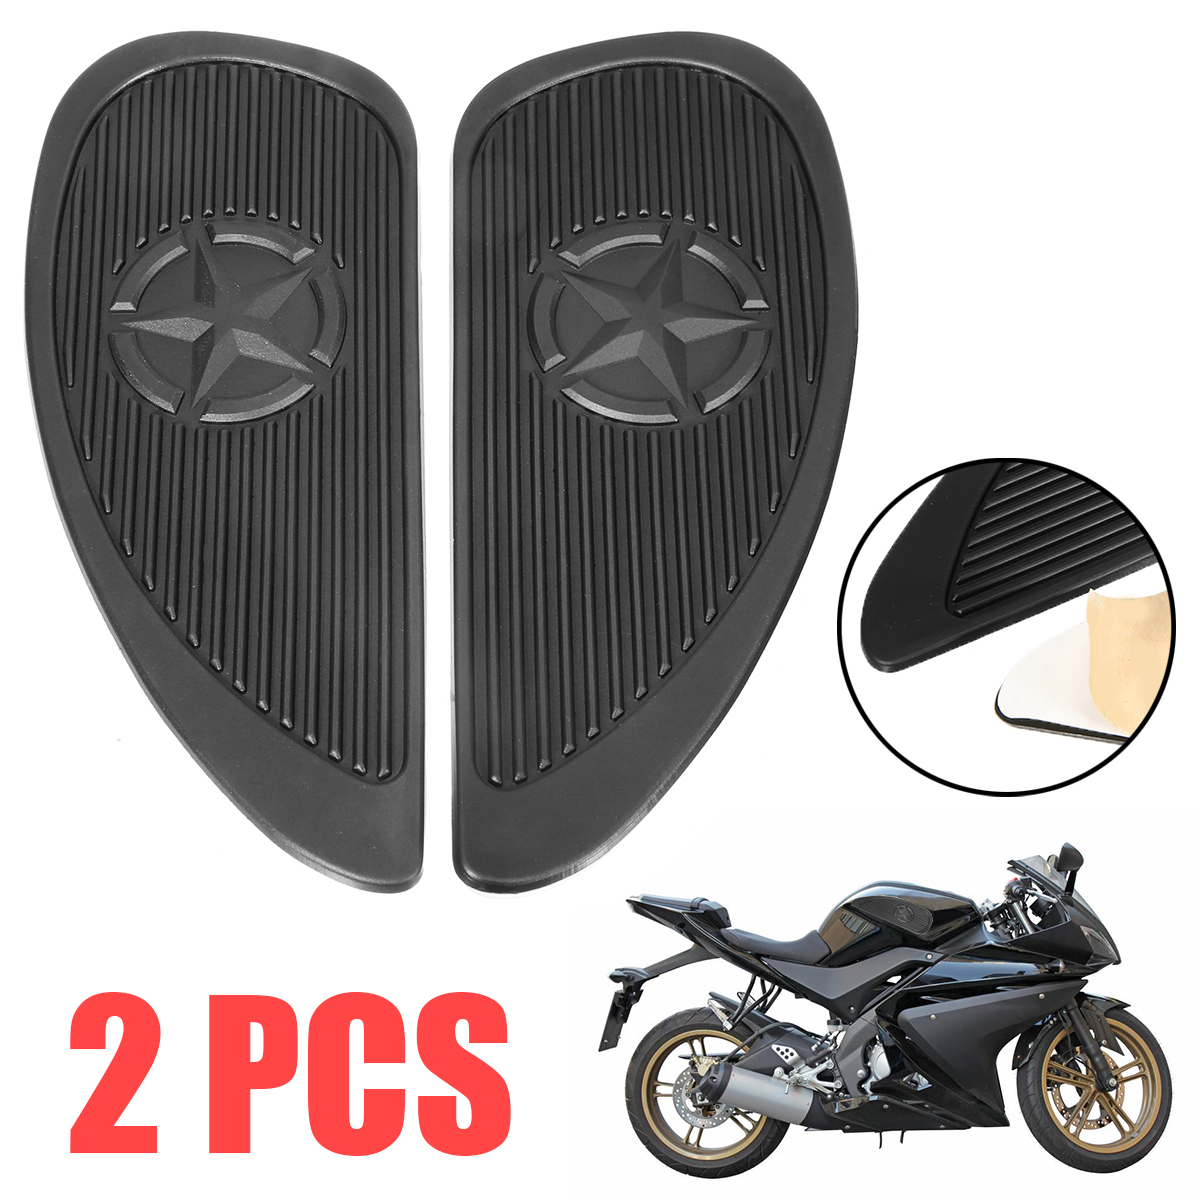 New Arrival 1pair Motorcycle Tank Traction Pad Side Gas Knee Grip Protector Anti Slip <font><b>Sticker</b></font> For <font><b>Suzuki</b></font> For Honda H-arley image